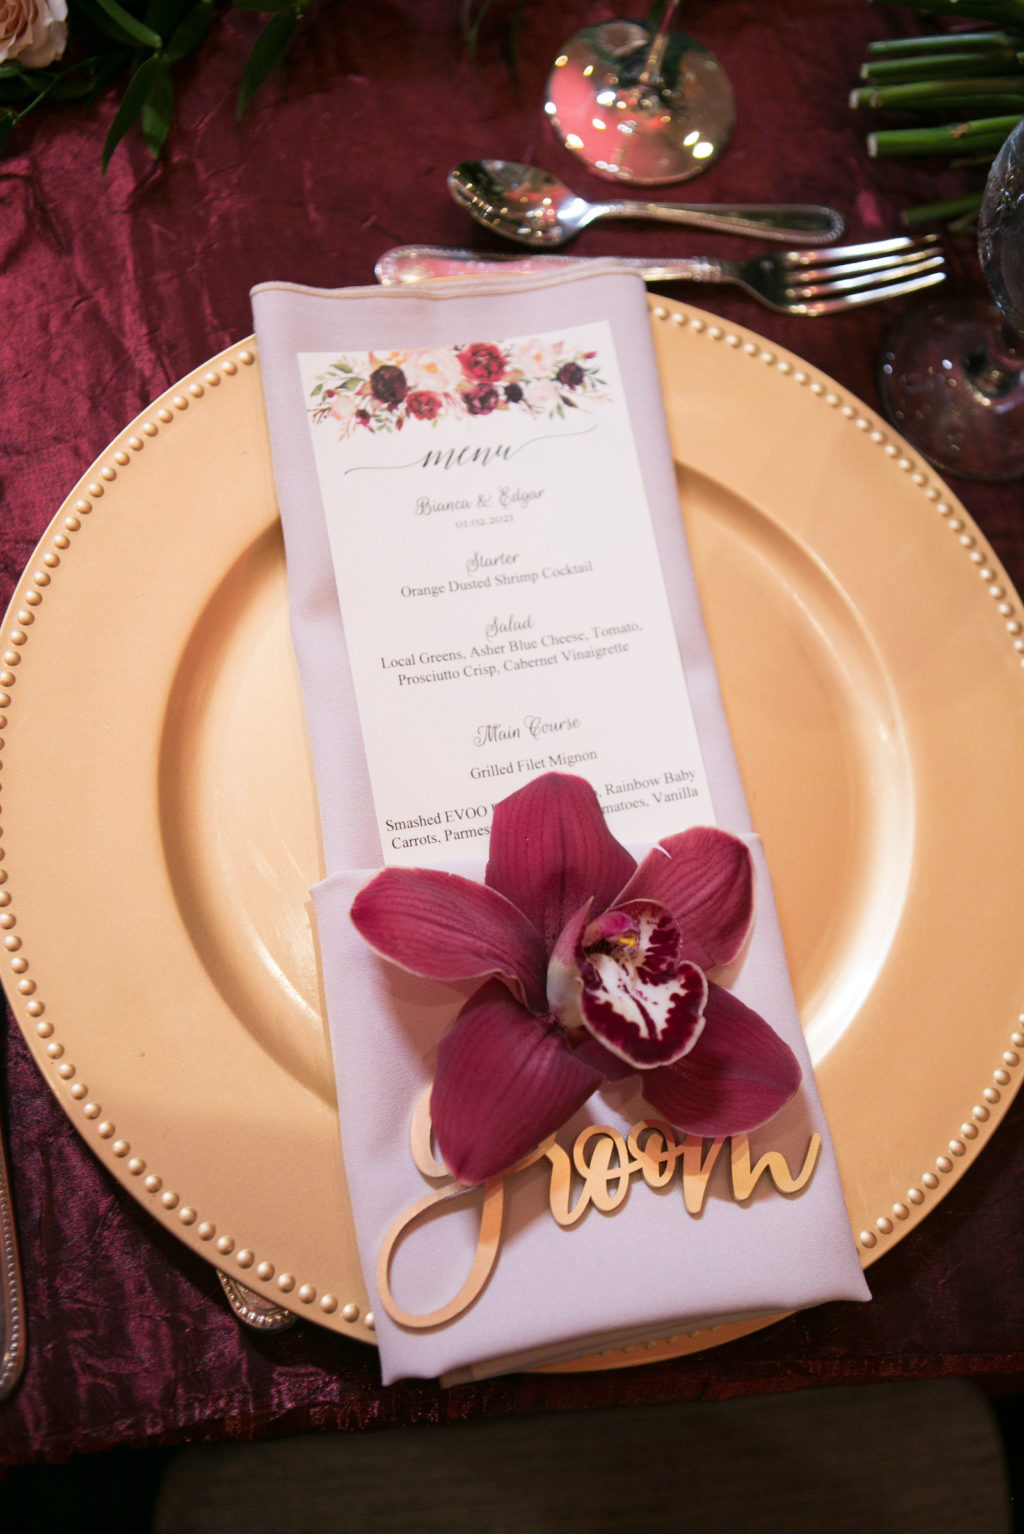 Elegant Wedding Reception Decor, Gold Charger, Burgundy Orchid, Laser Cut Groom Place Card, Floral Stationery Menu | Tampa Bay Wedding Photographer Carrie Wildes Photography